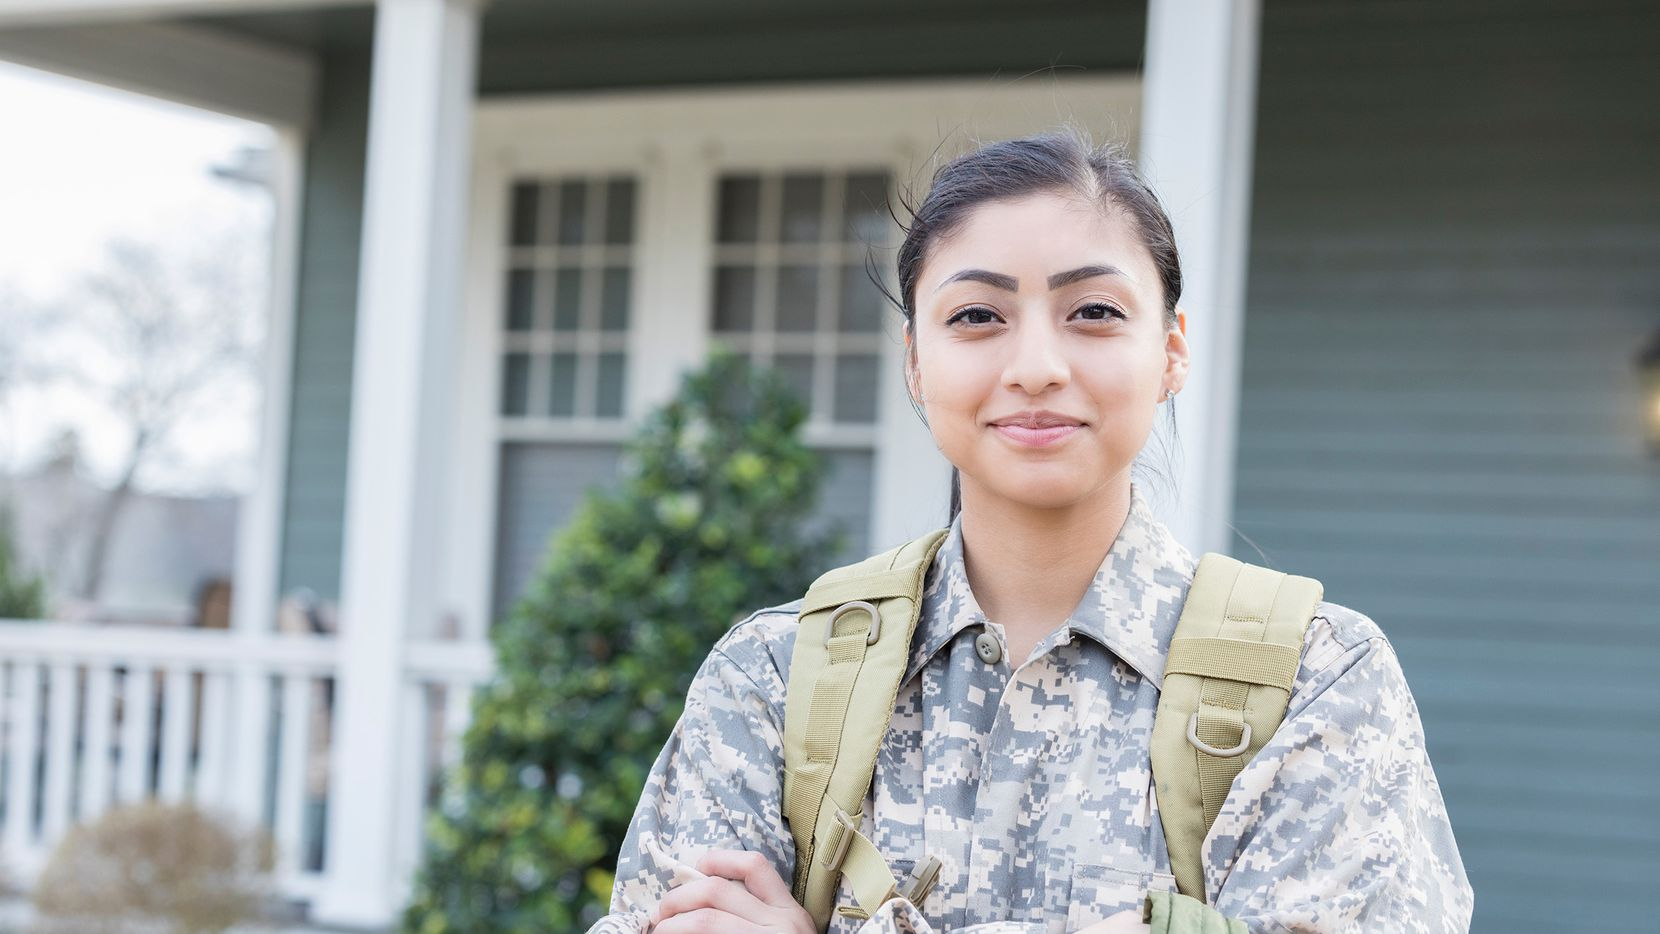 Those who live in the North Texas region and have served in any branch of the military may be qualified for the Veterans to Realtors program.